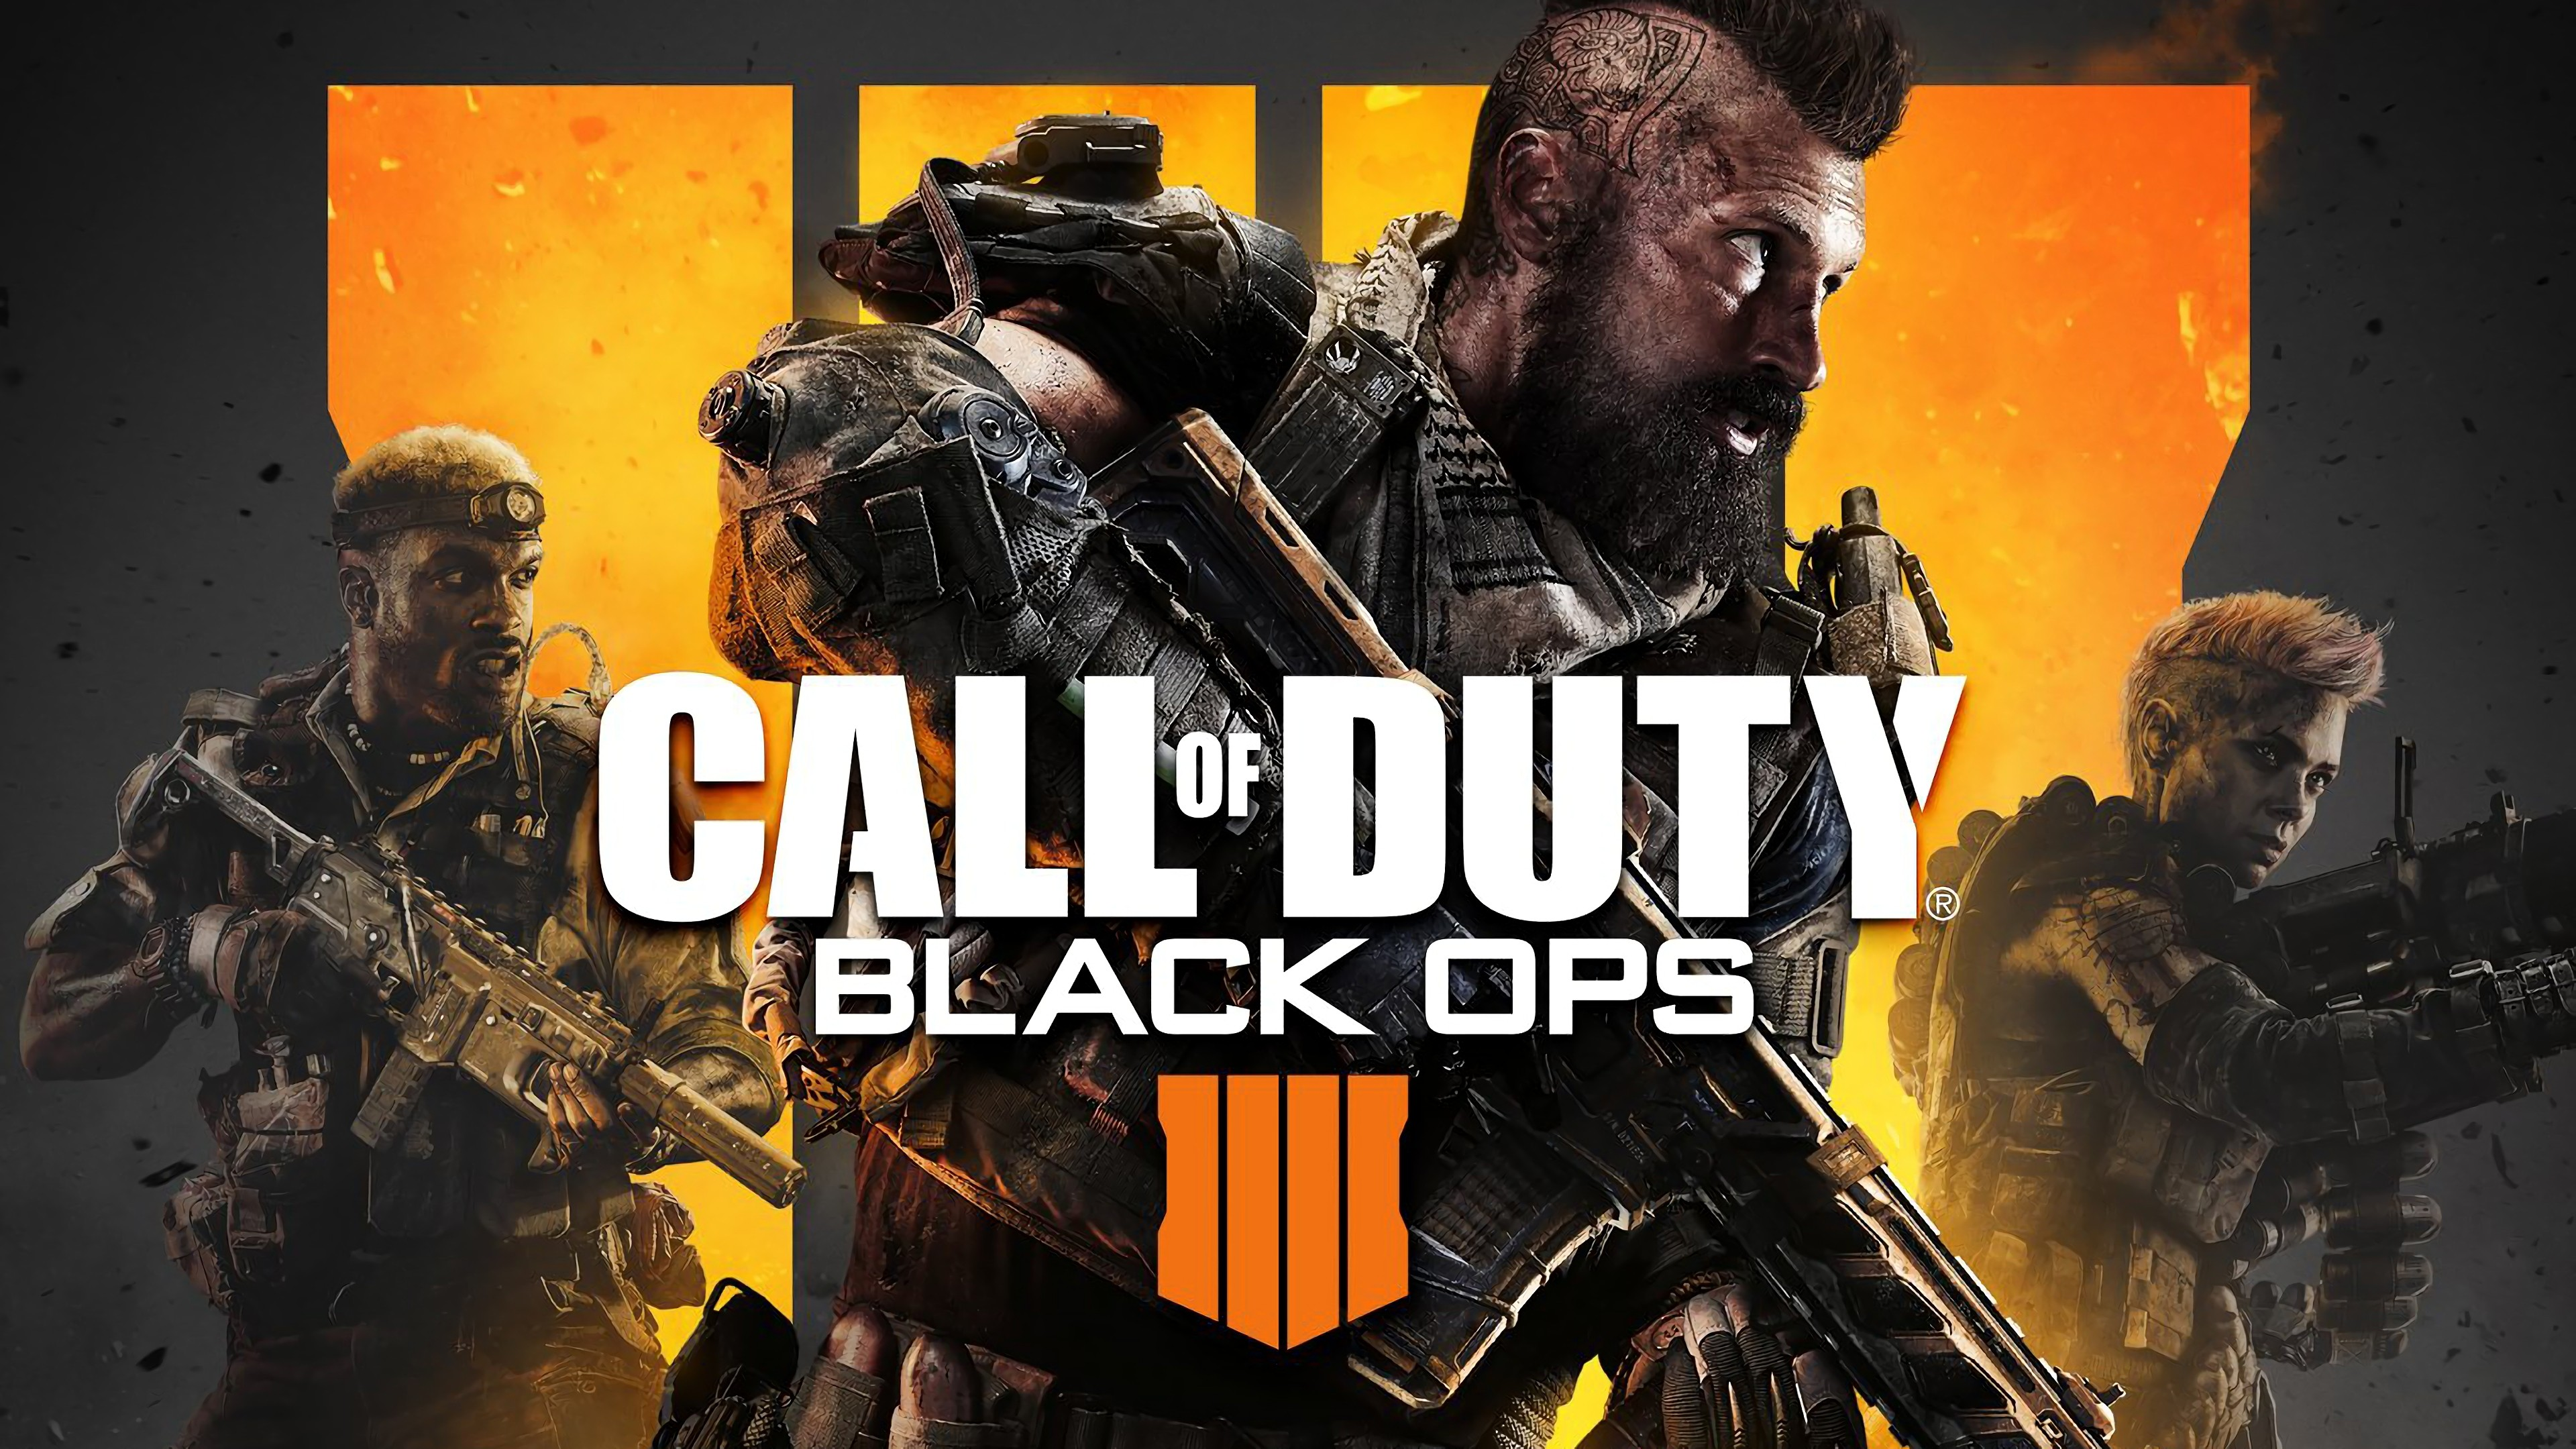 Wallpaper Call of Duty Black Ops 4 Poster